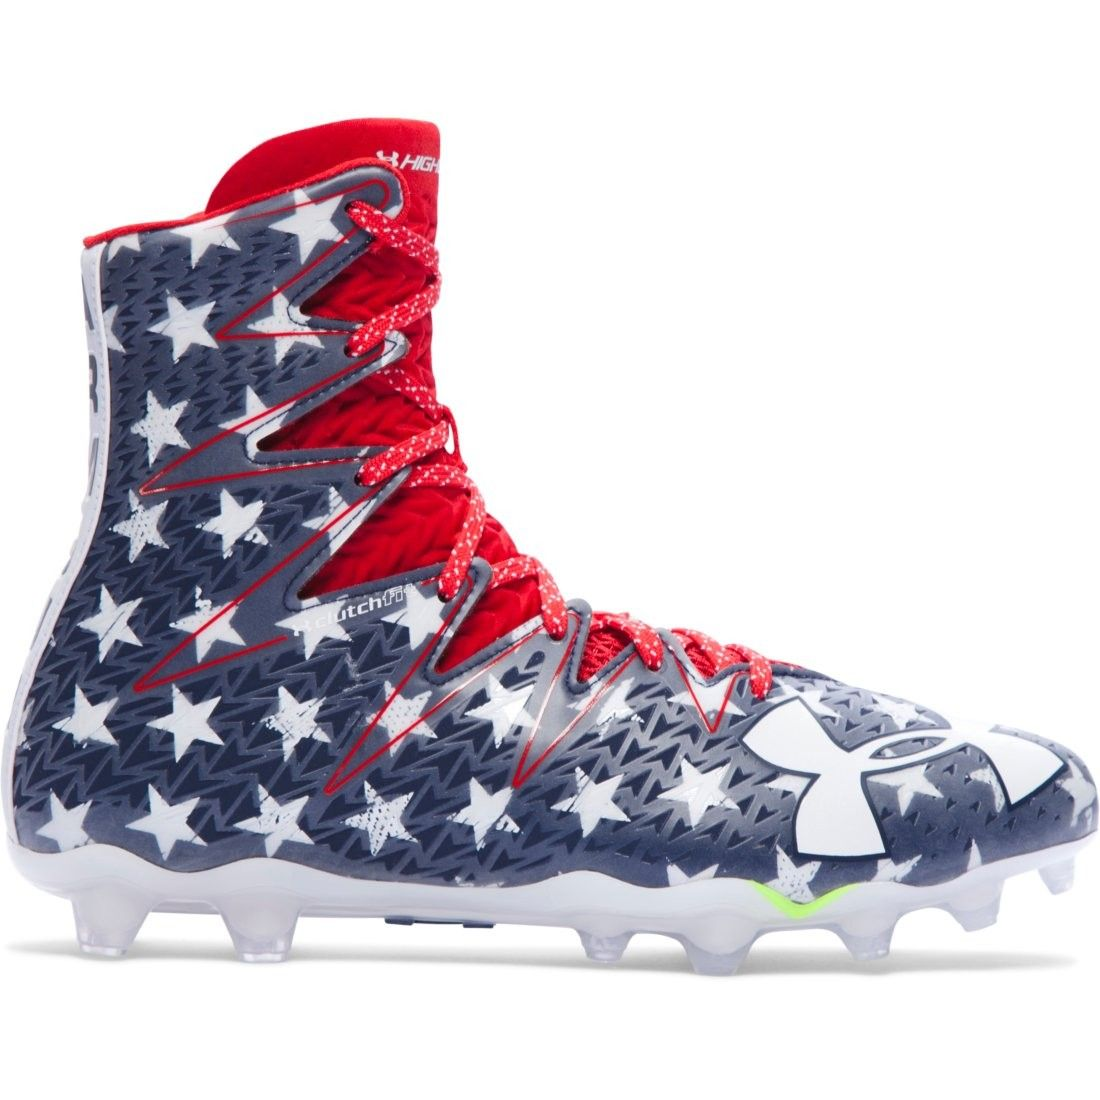 Pin By Lacrosse Unlimited On Under Armour Footwear Lacrosse Cleats American Football Cleats Football Cleats